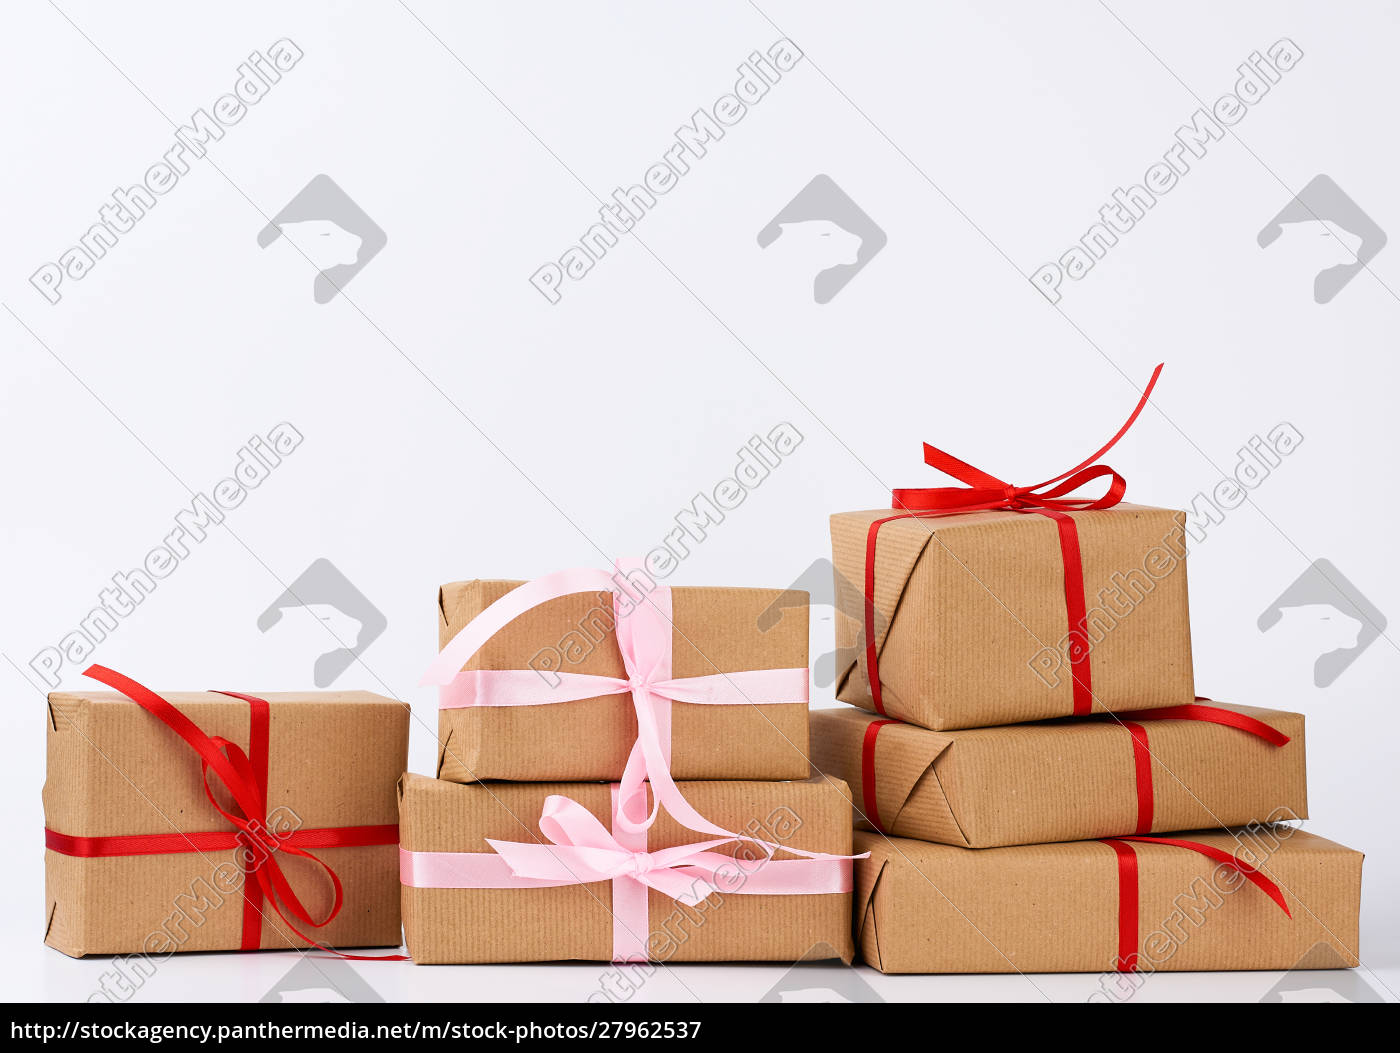 stack, of, gifts, in, boxes, wrapped - 27962537